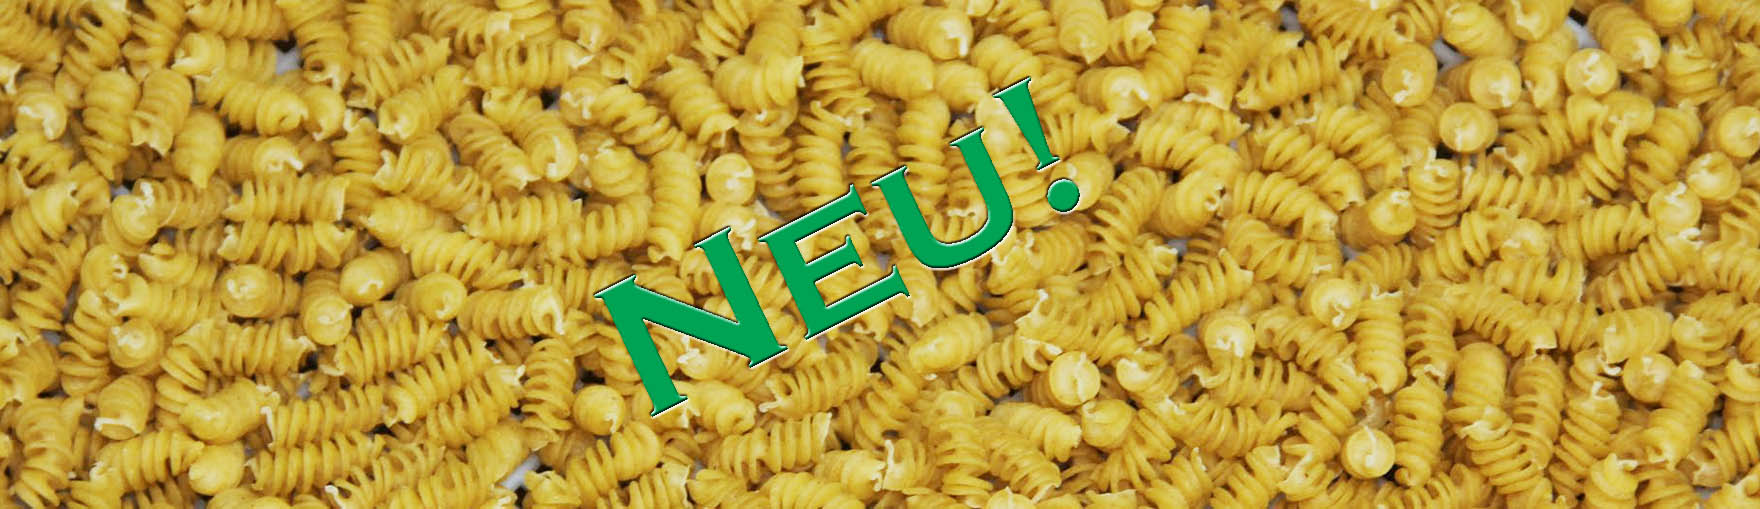 nudeln-unverpackt-homepage-neu